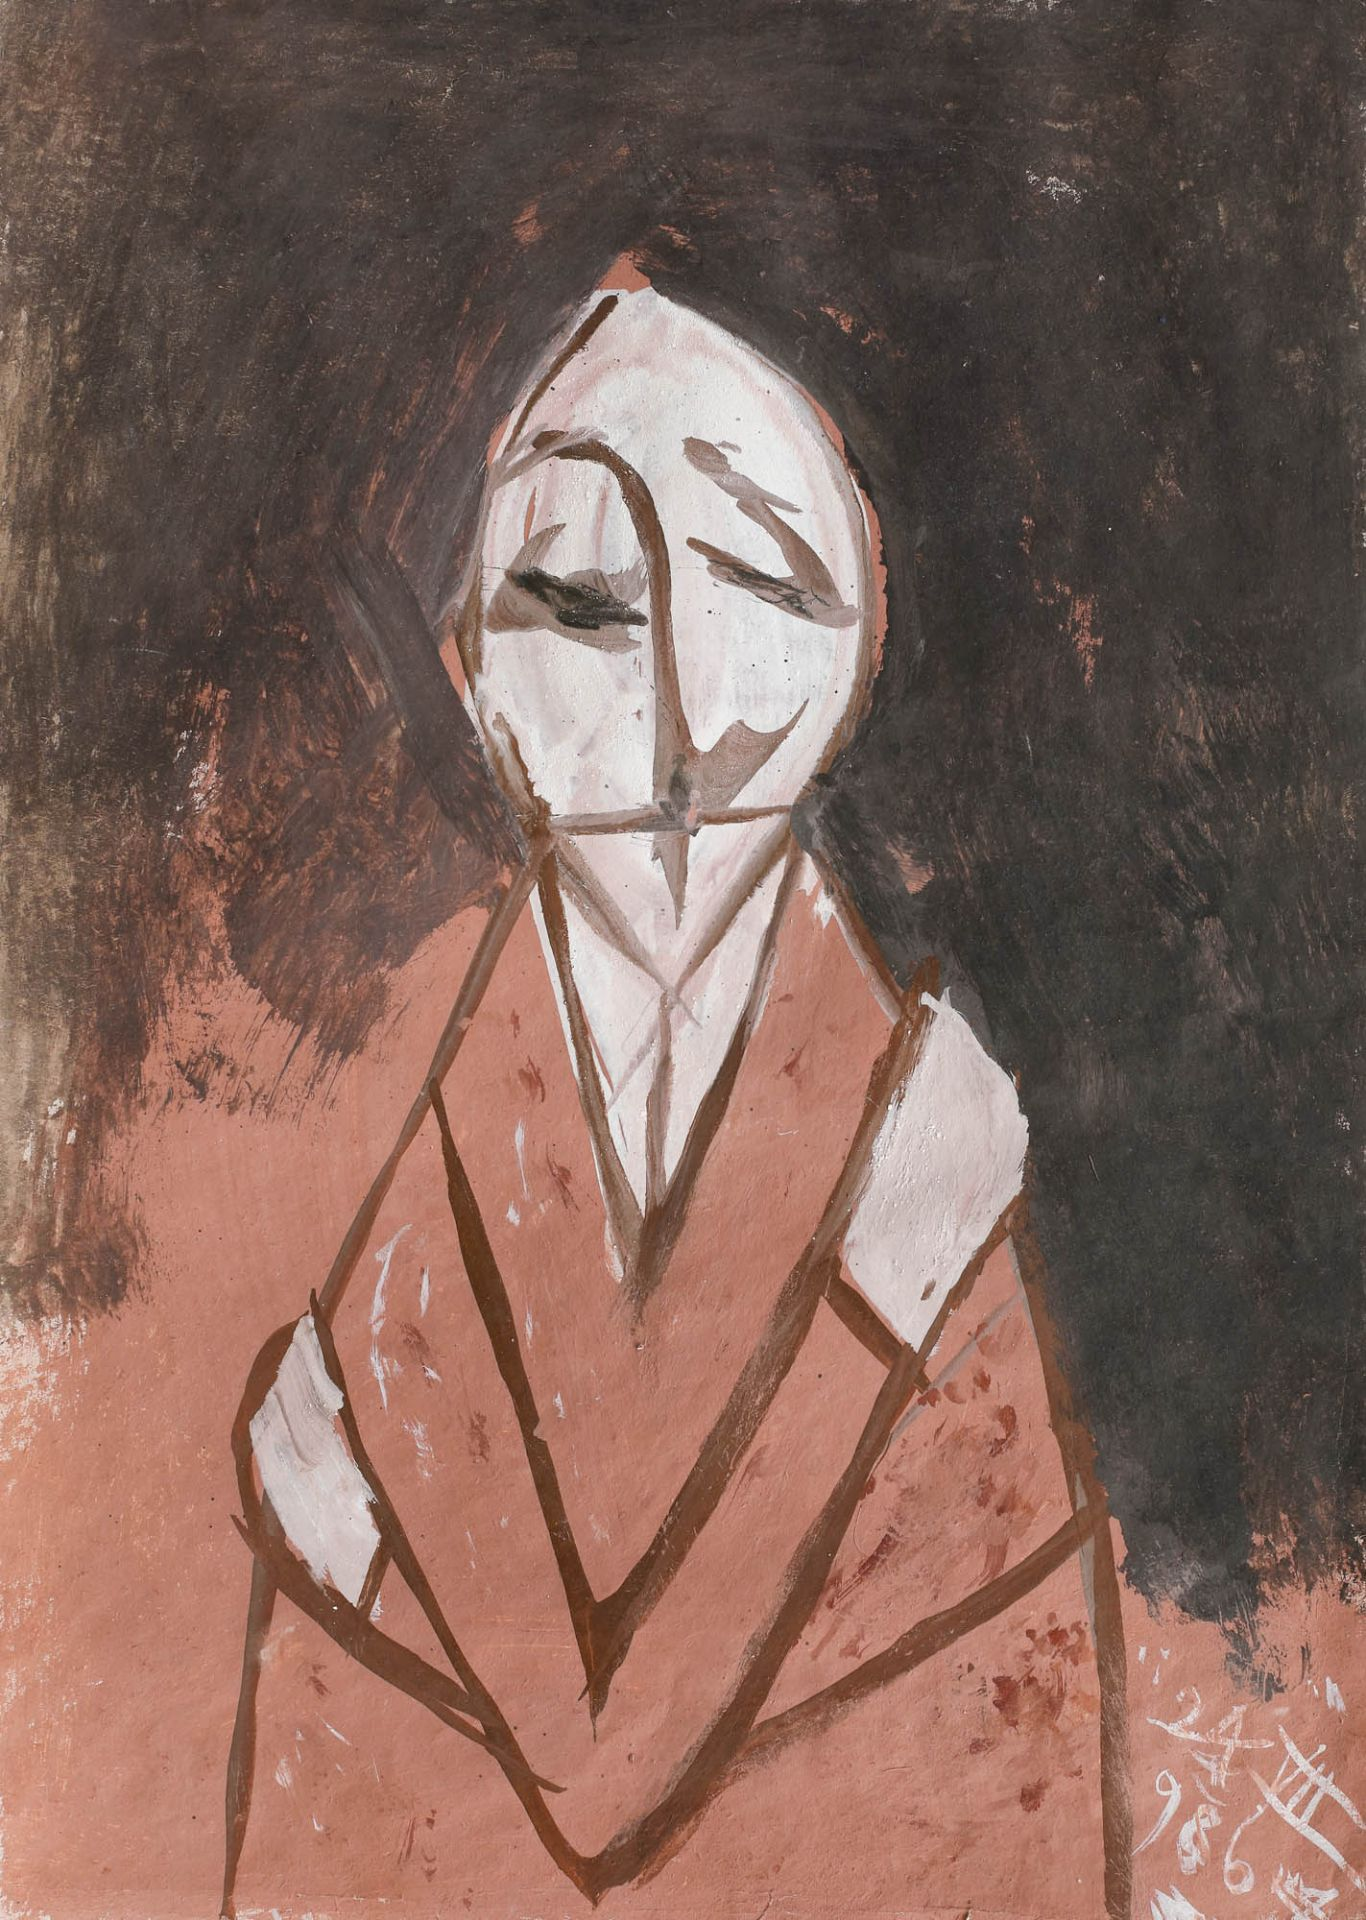 Florin Mitroi, Days. 24.III.1986Florin Mitroi, Days. 24.III.1986, tempera on paper, 49,5 × 3